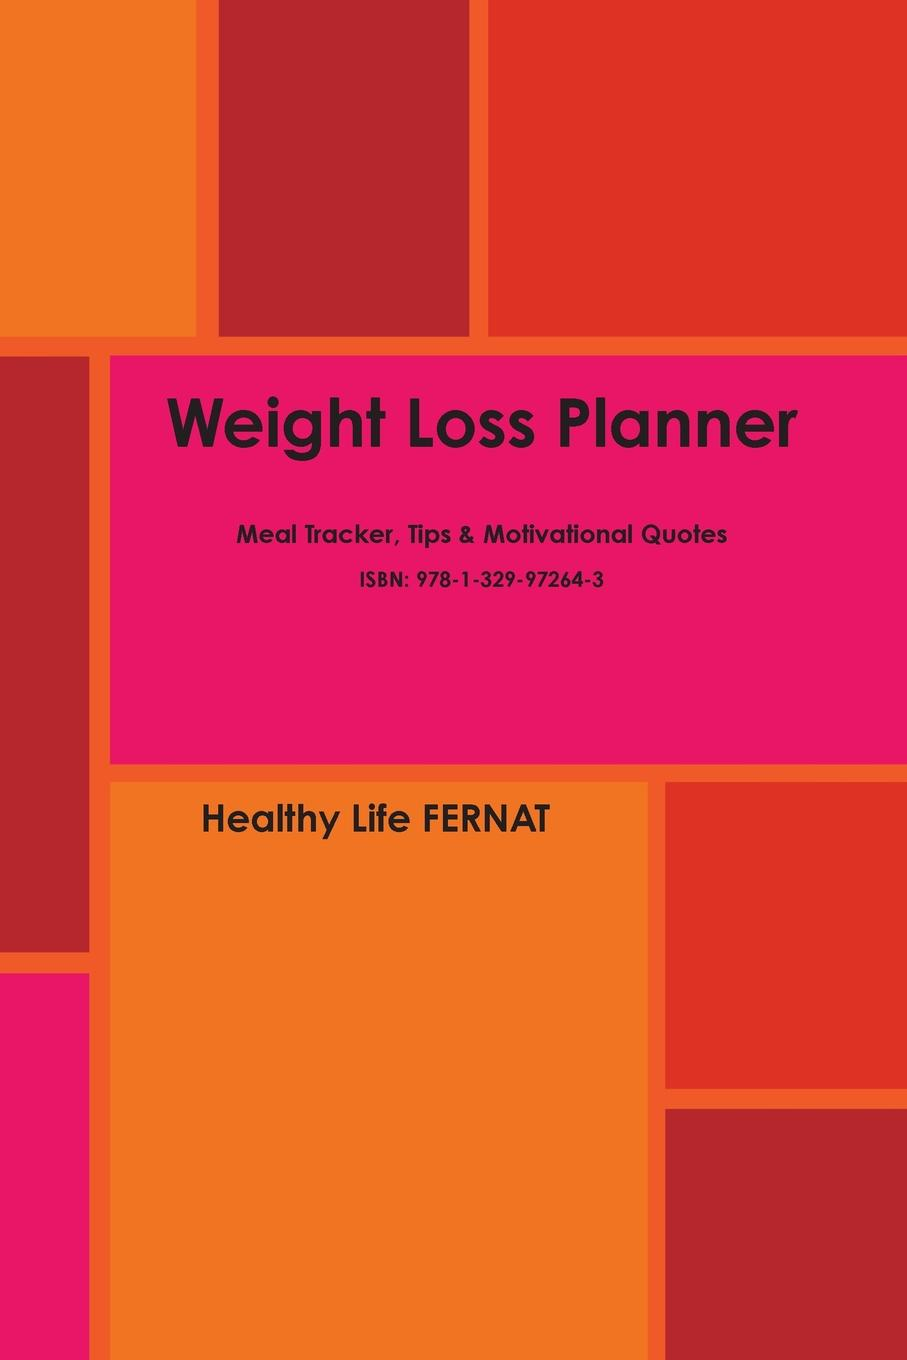 Healthy Life FERNAT Weight Loss Planner